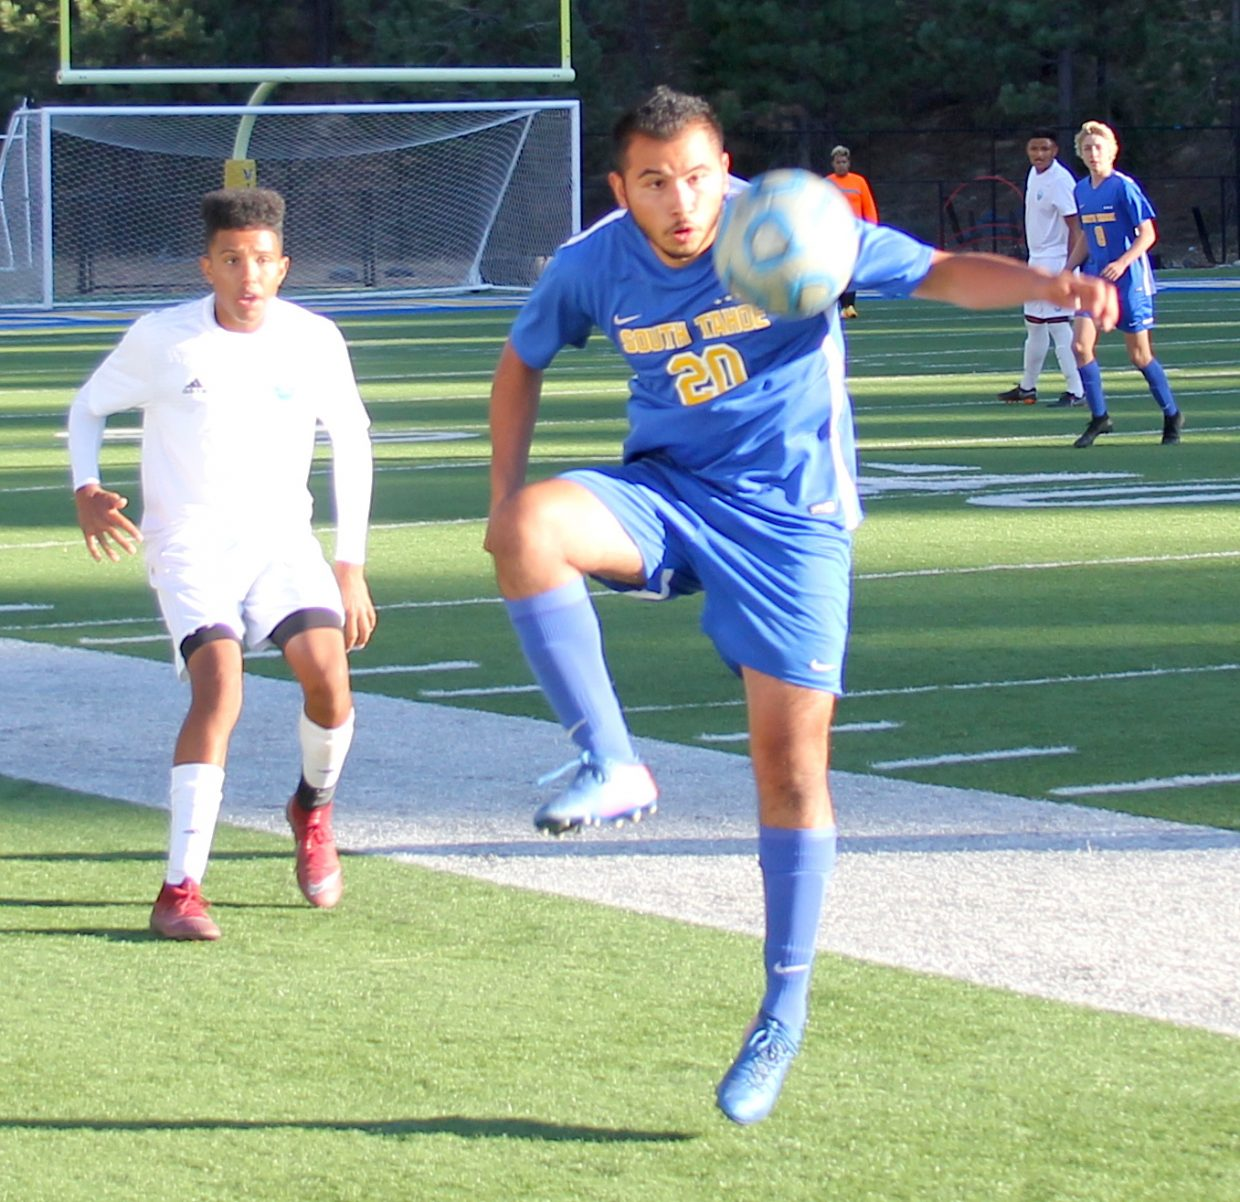 Oscar Negrete Bravo receives a pass Wednesday against North Valleys.